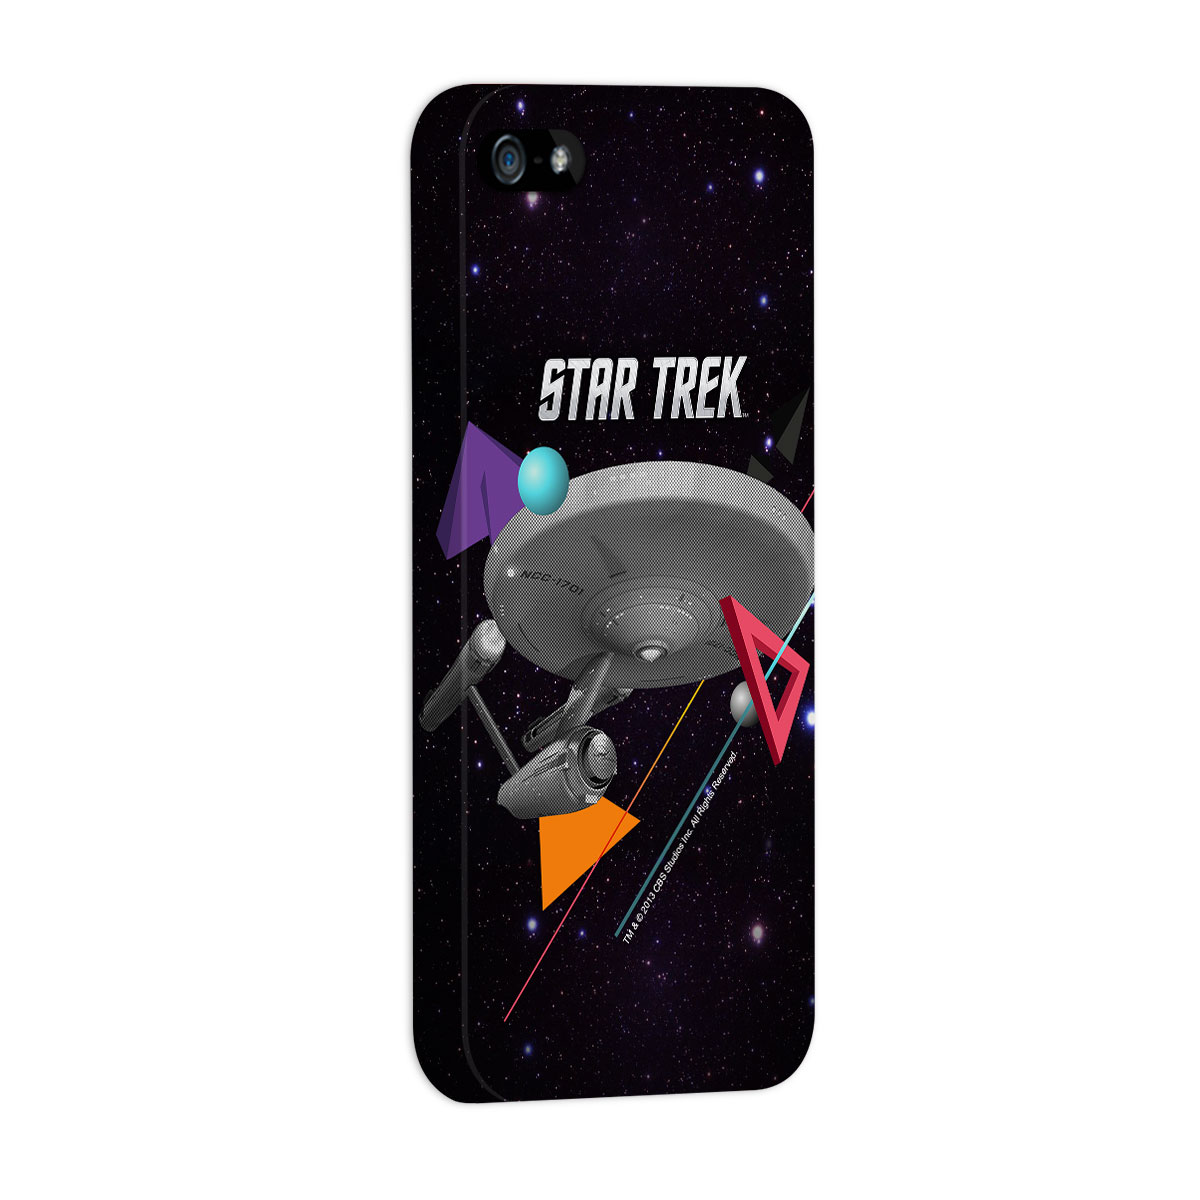 Capa de iPhone 5/5S Star Trek Enterprise